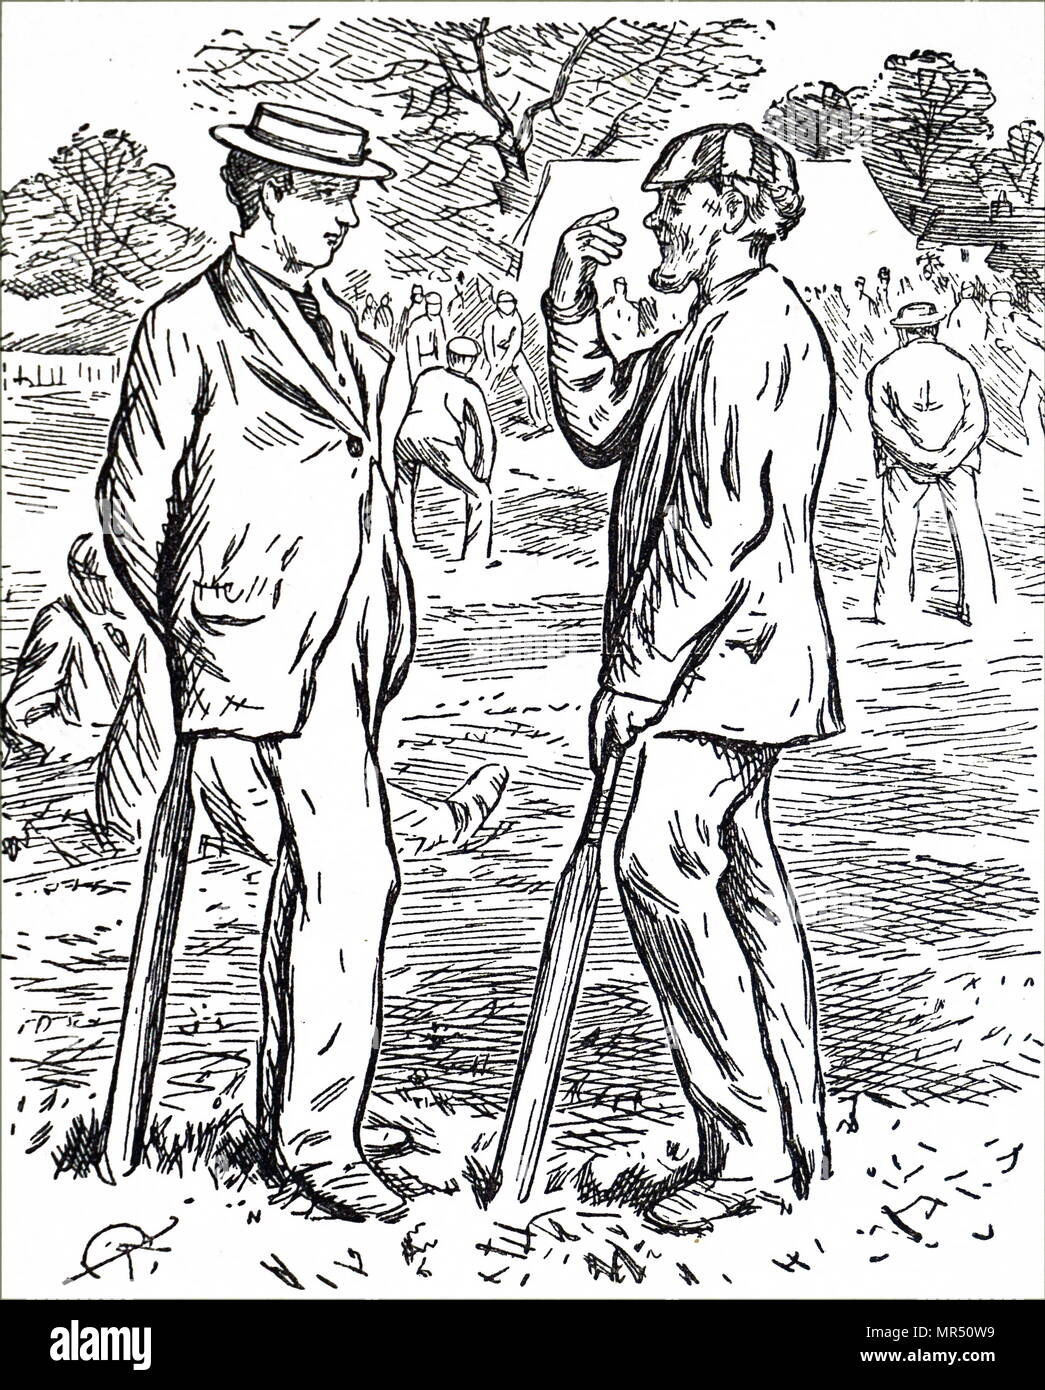 Cartoon depicting men playing cricket. Dated 19th century - Stock Image